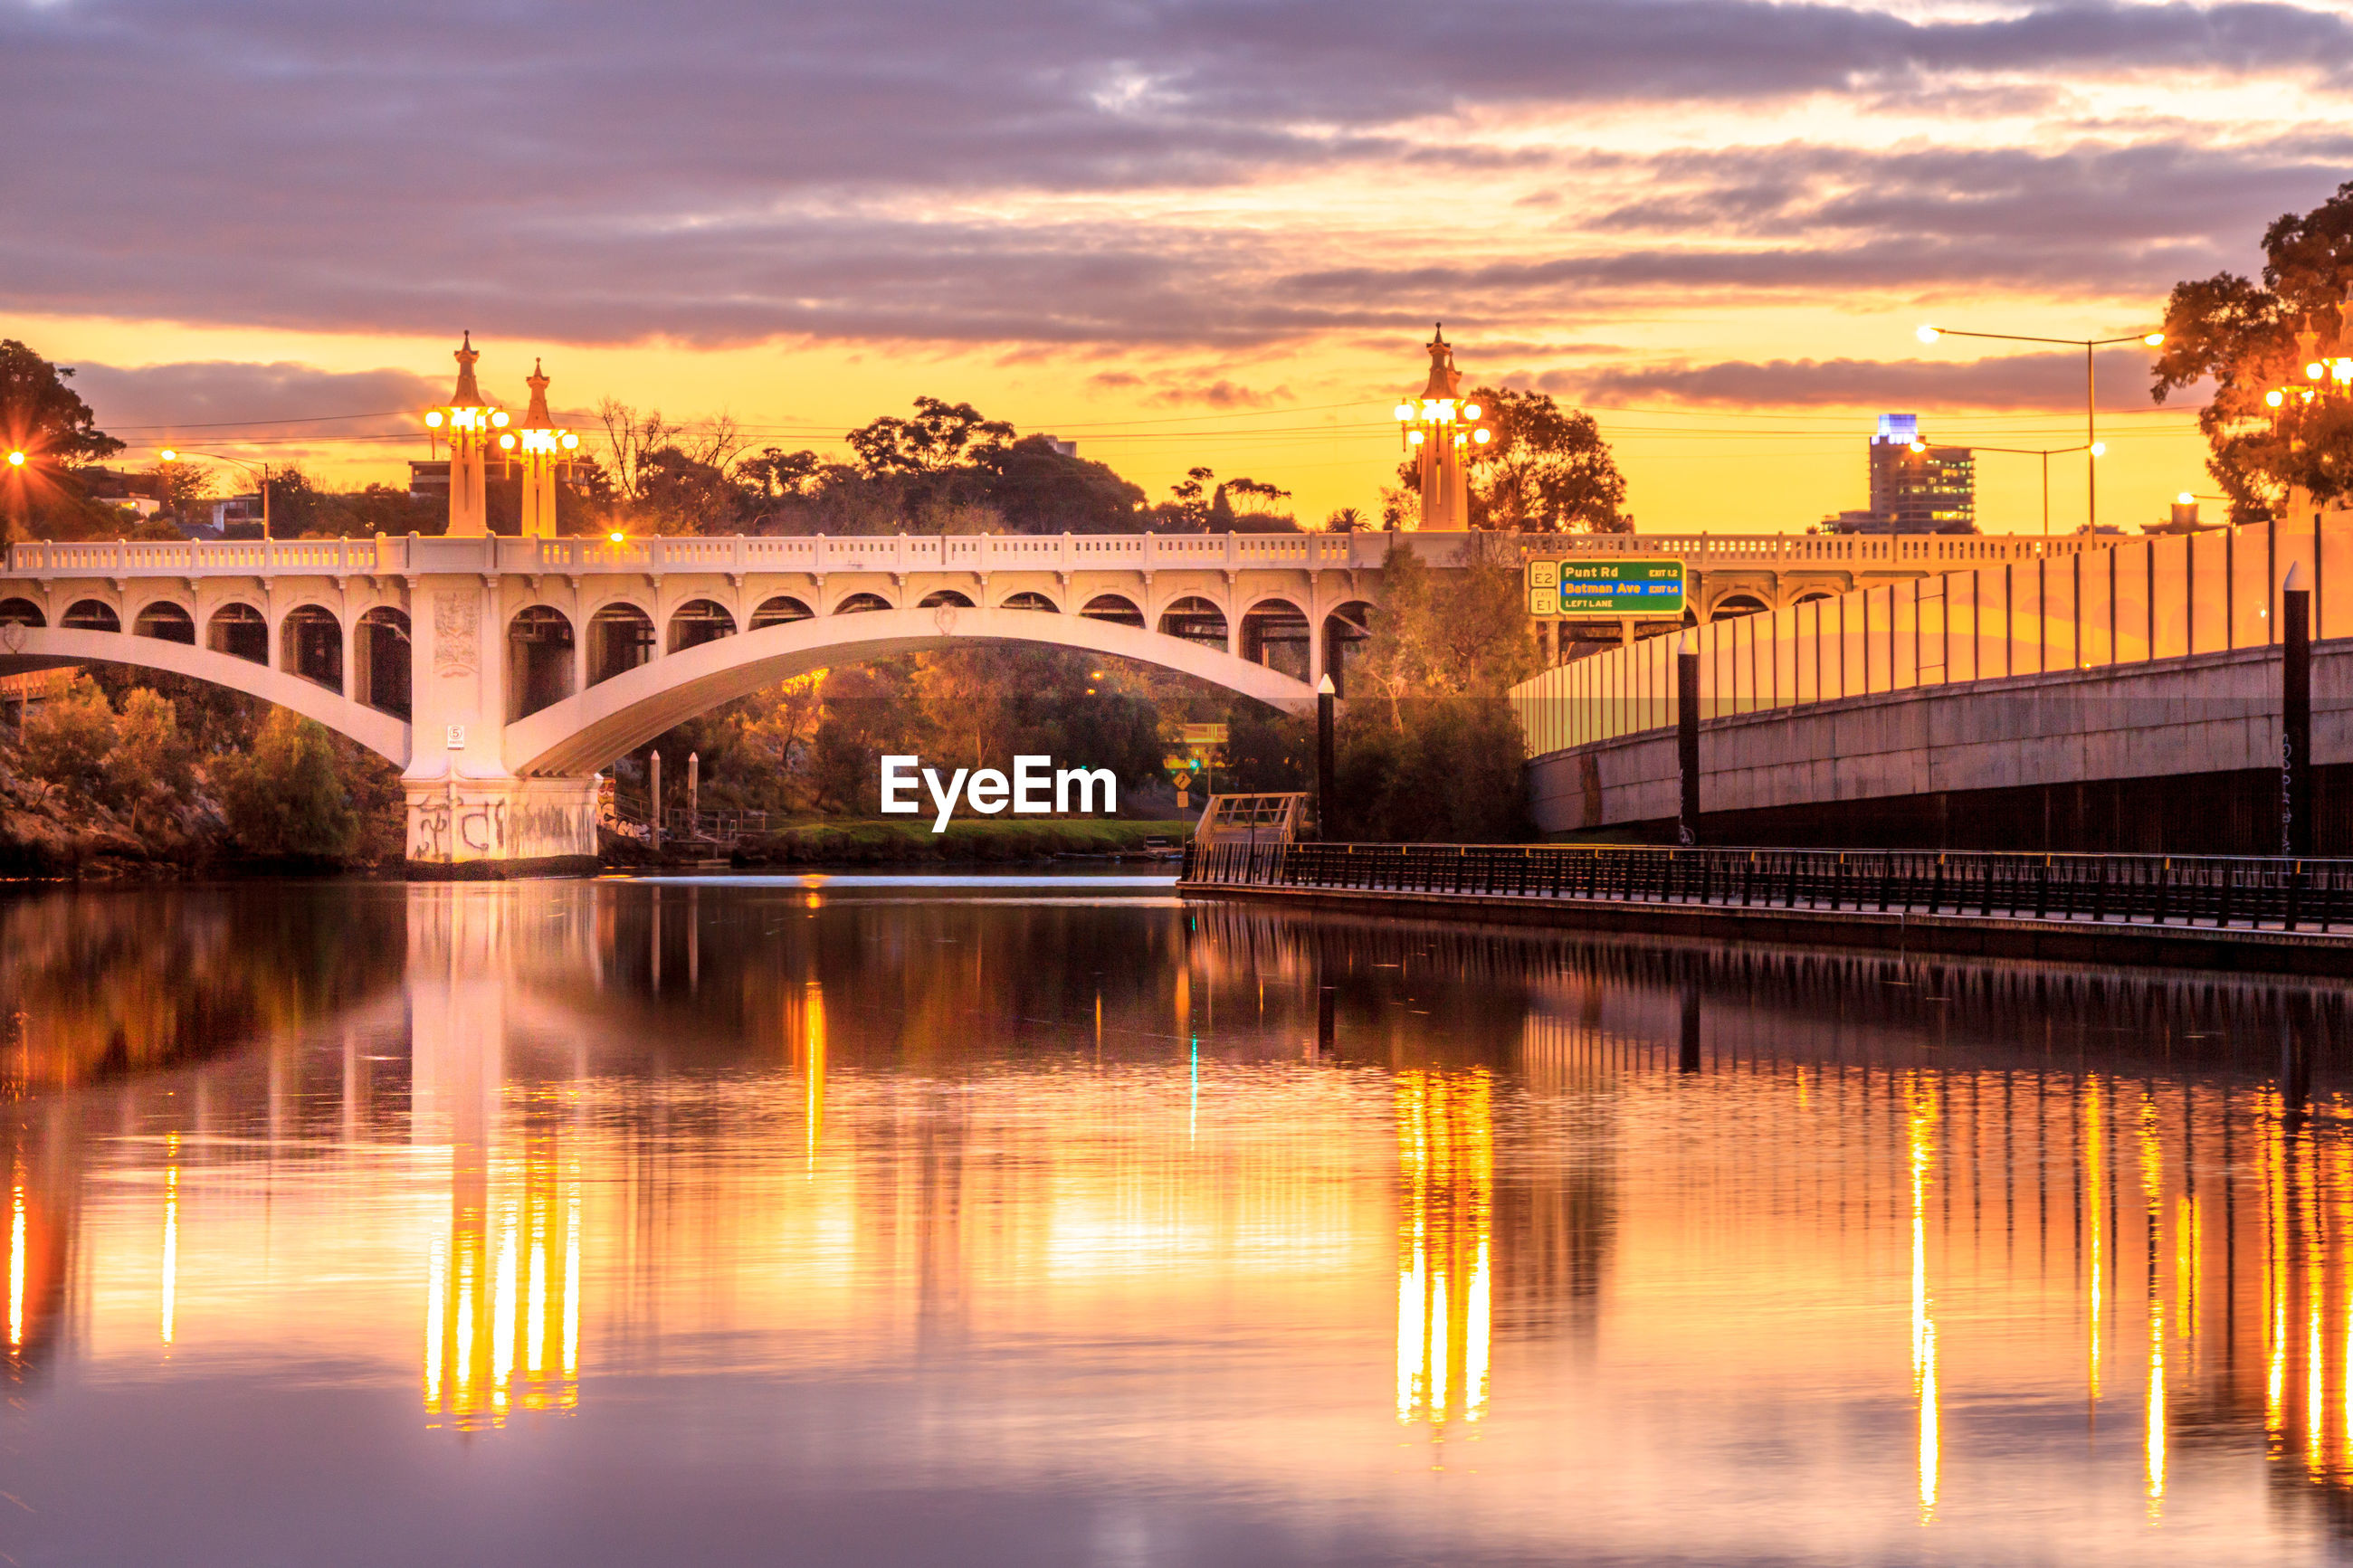 Illuminated arch bridge over river against cloudy sky during sunset